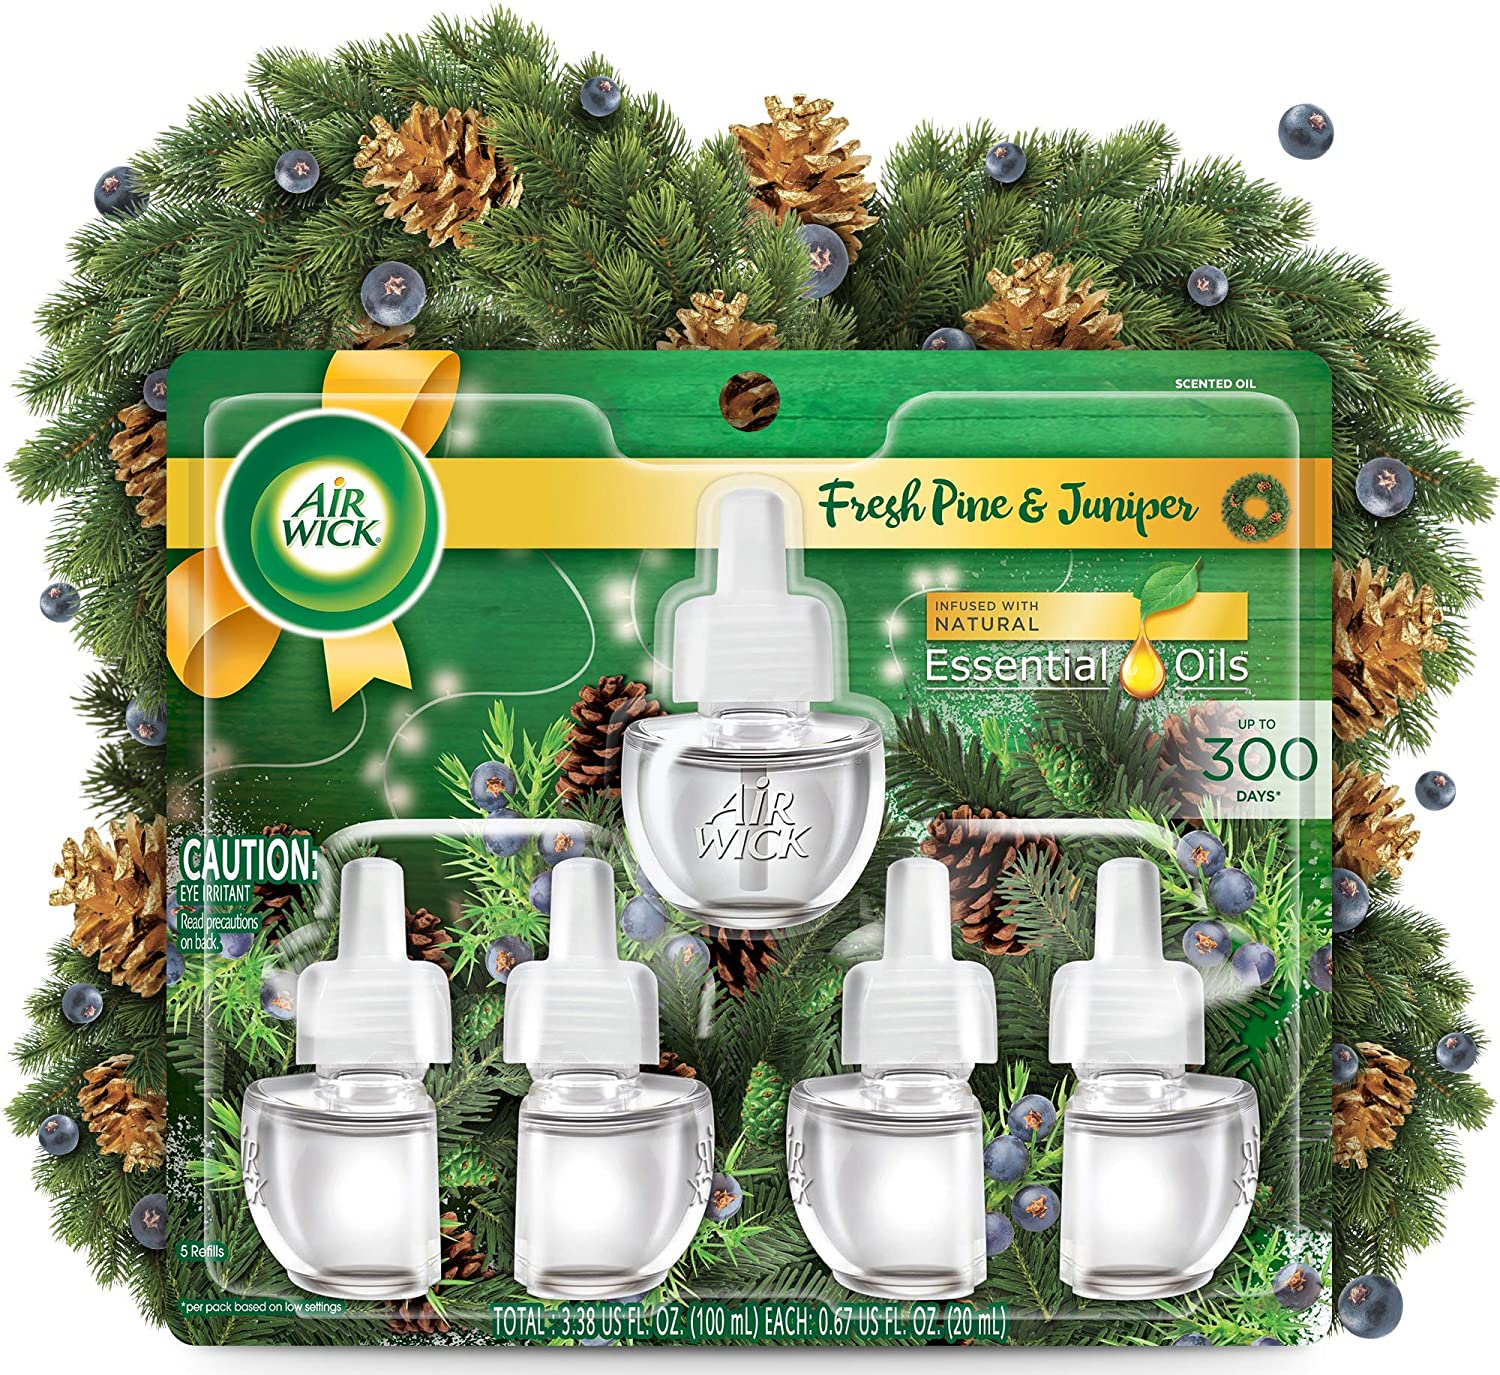 Air Wick Plug in Scented Oil 5 Refills, Fresh Pine and Juniper, Fall Scent, Fall Spray, (5x0.67oz), Essential Oils, Air Freshener, Packaging May Vary